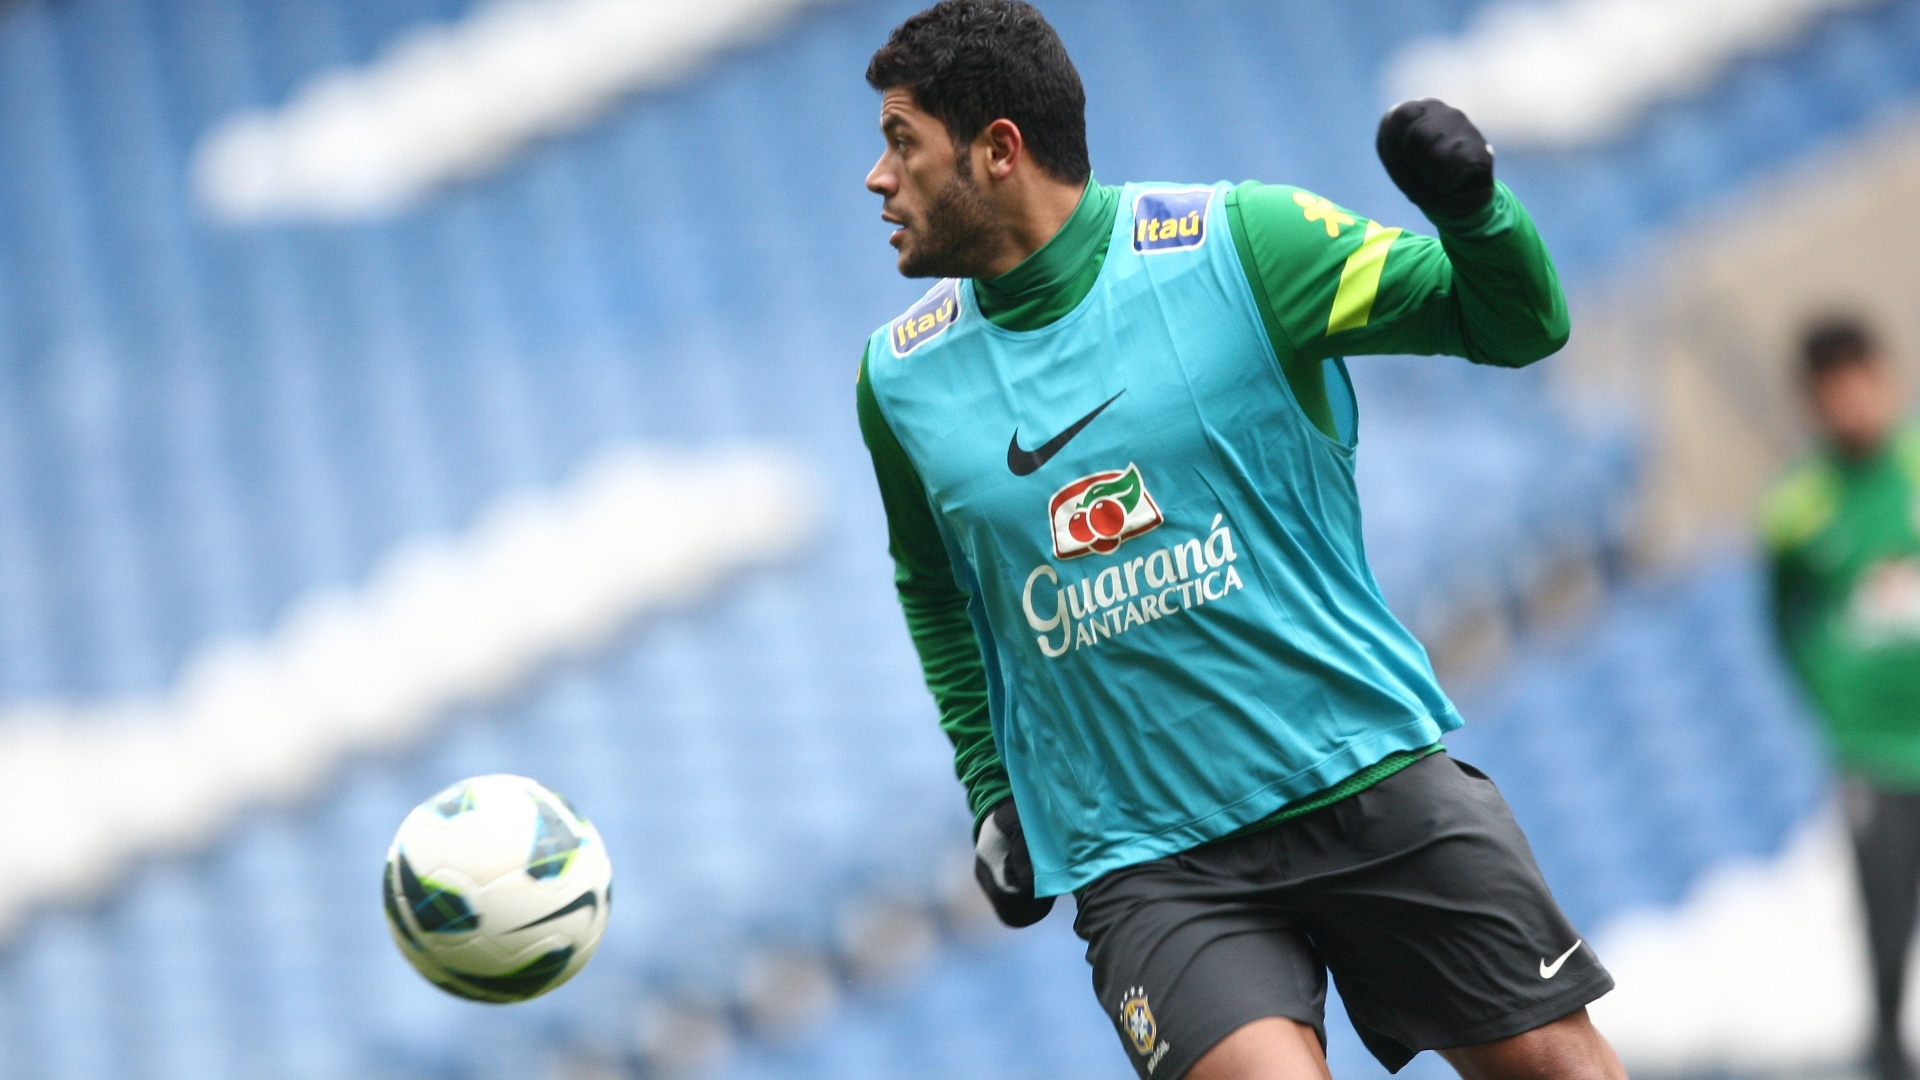 24.mar.2013 - Hulk participa do treino da seleo brasileira, em Londres, neste domingo, para o amistoso contra a Rssia, que acontecer na segunda-feira